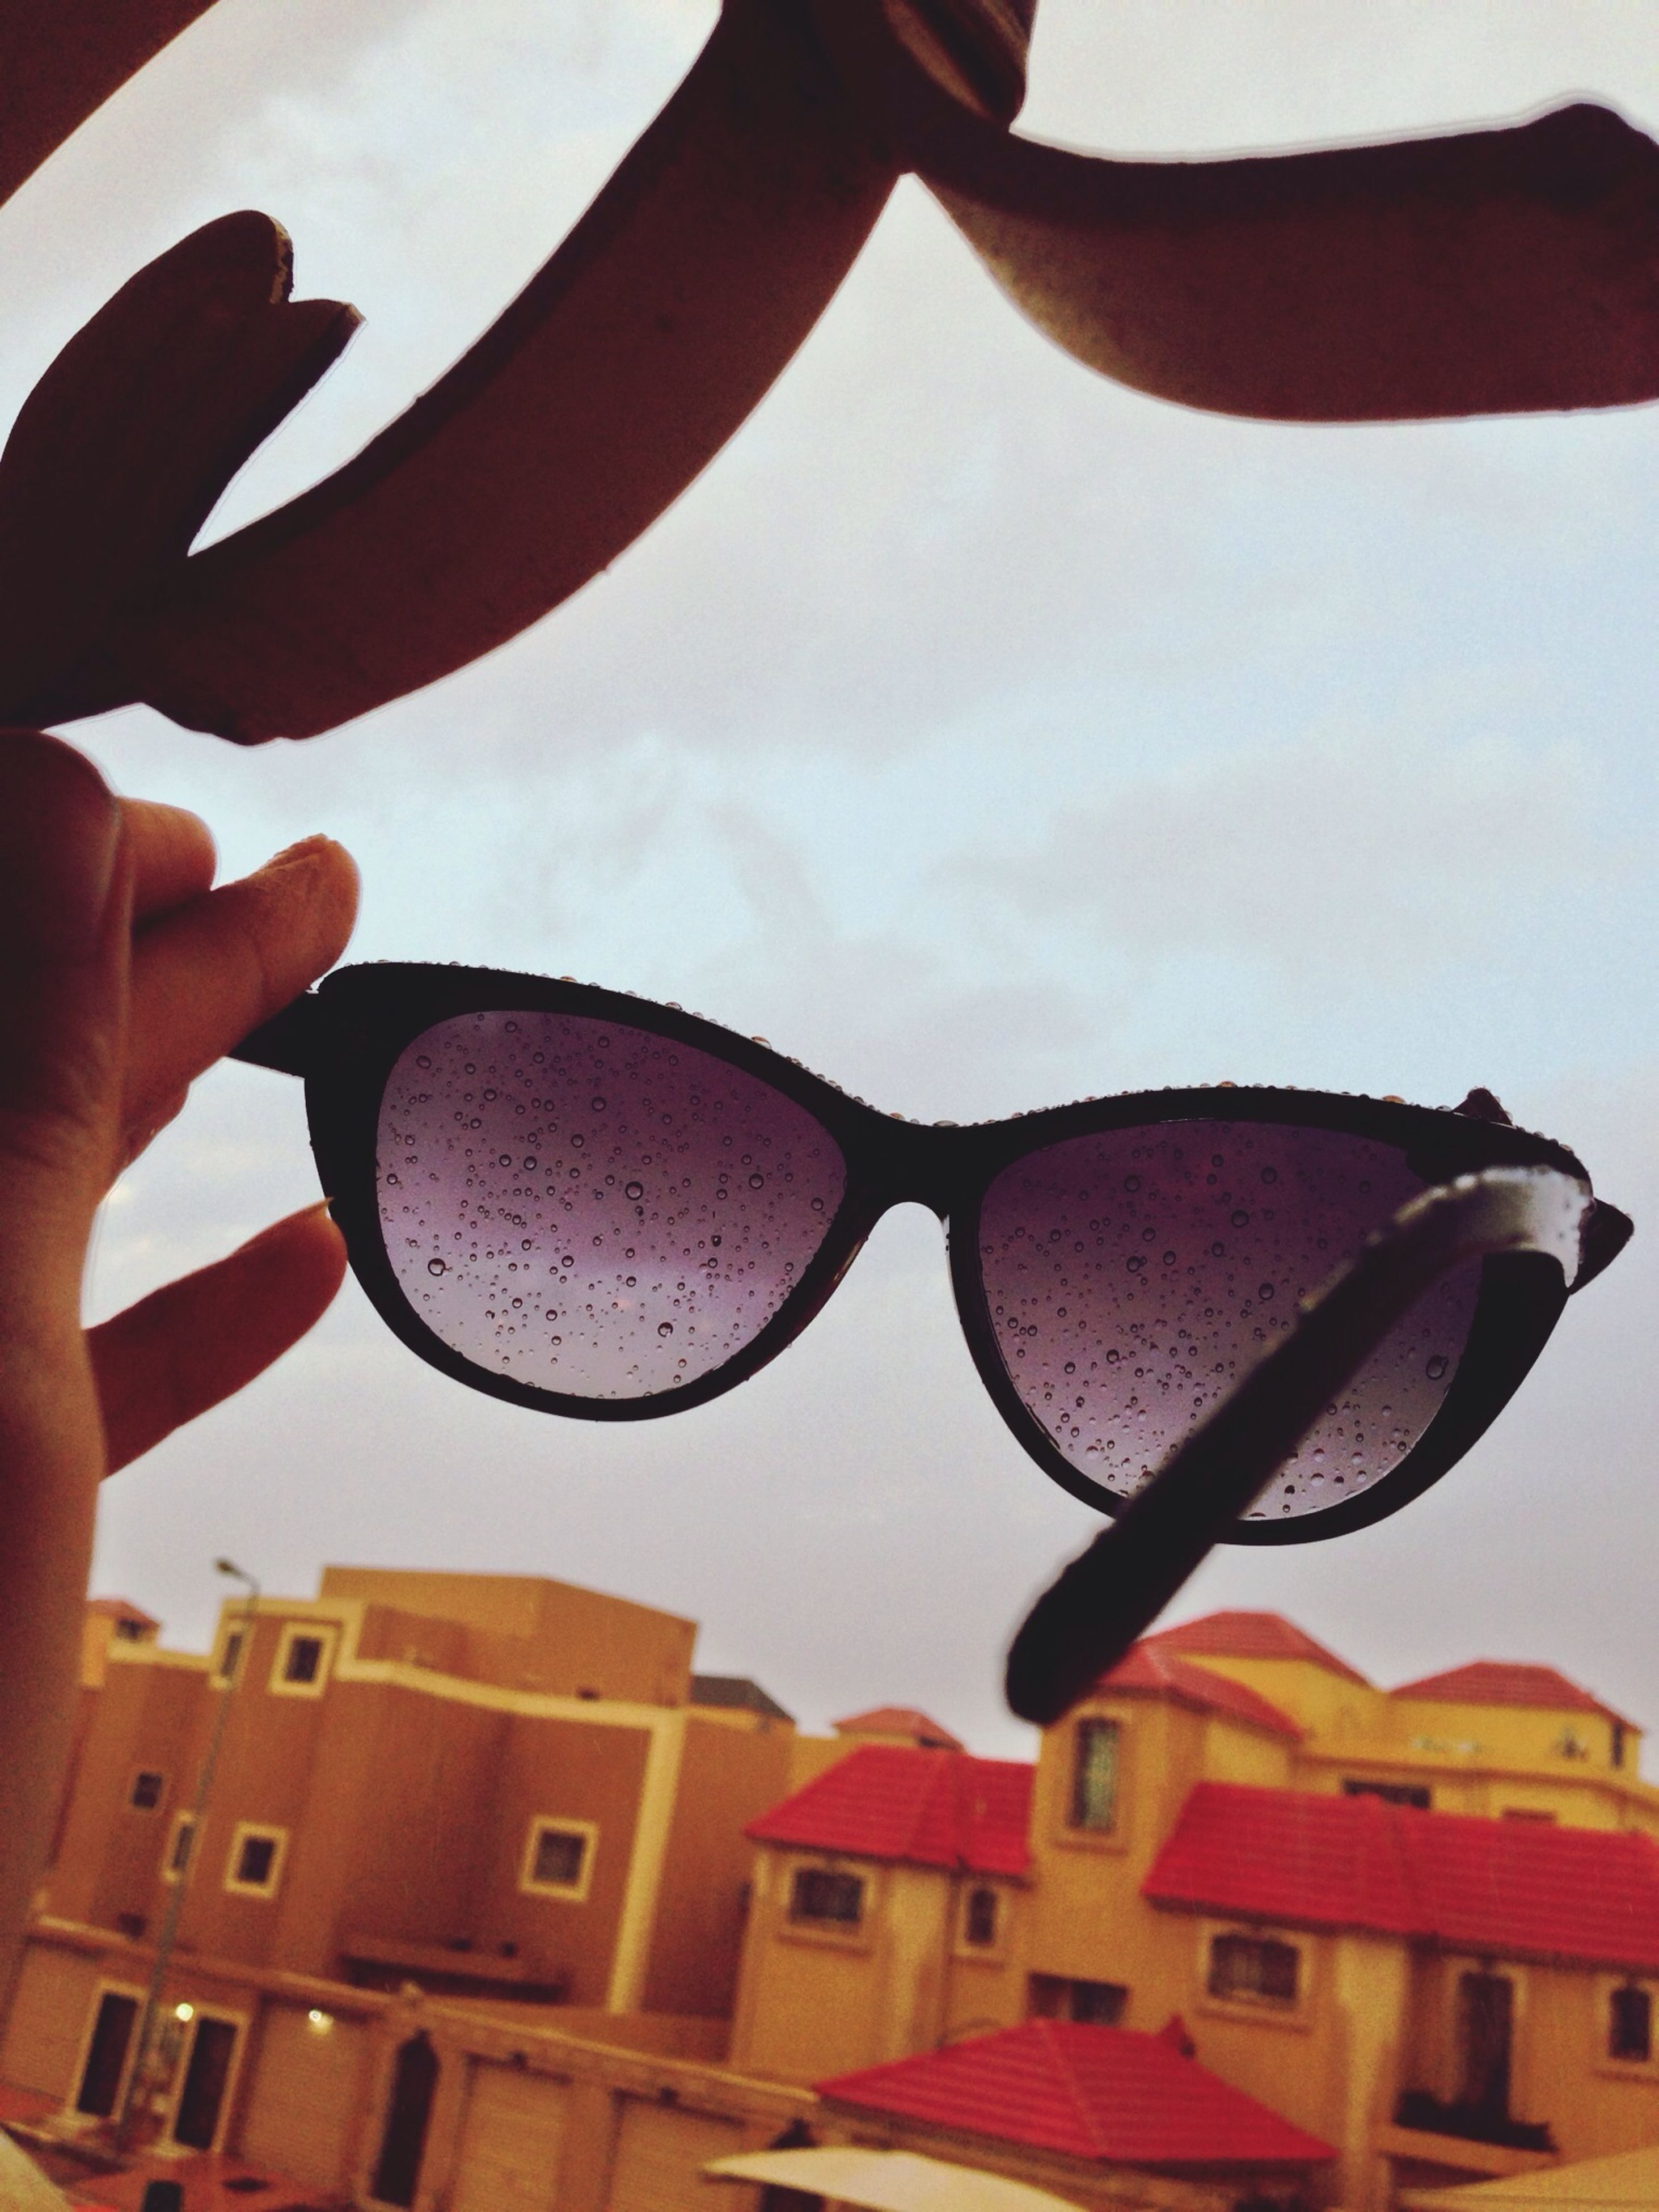 built structure, building exterior, architecture, leisure activity, part of, lifestyles, person, cropped, holding, sky, sunglasses, day, unrecognizable person, outdoors, city, close-up, reflection